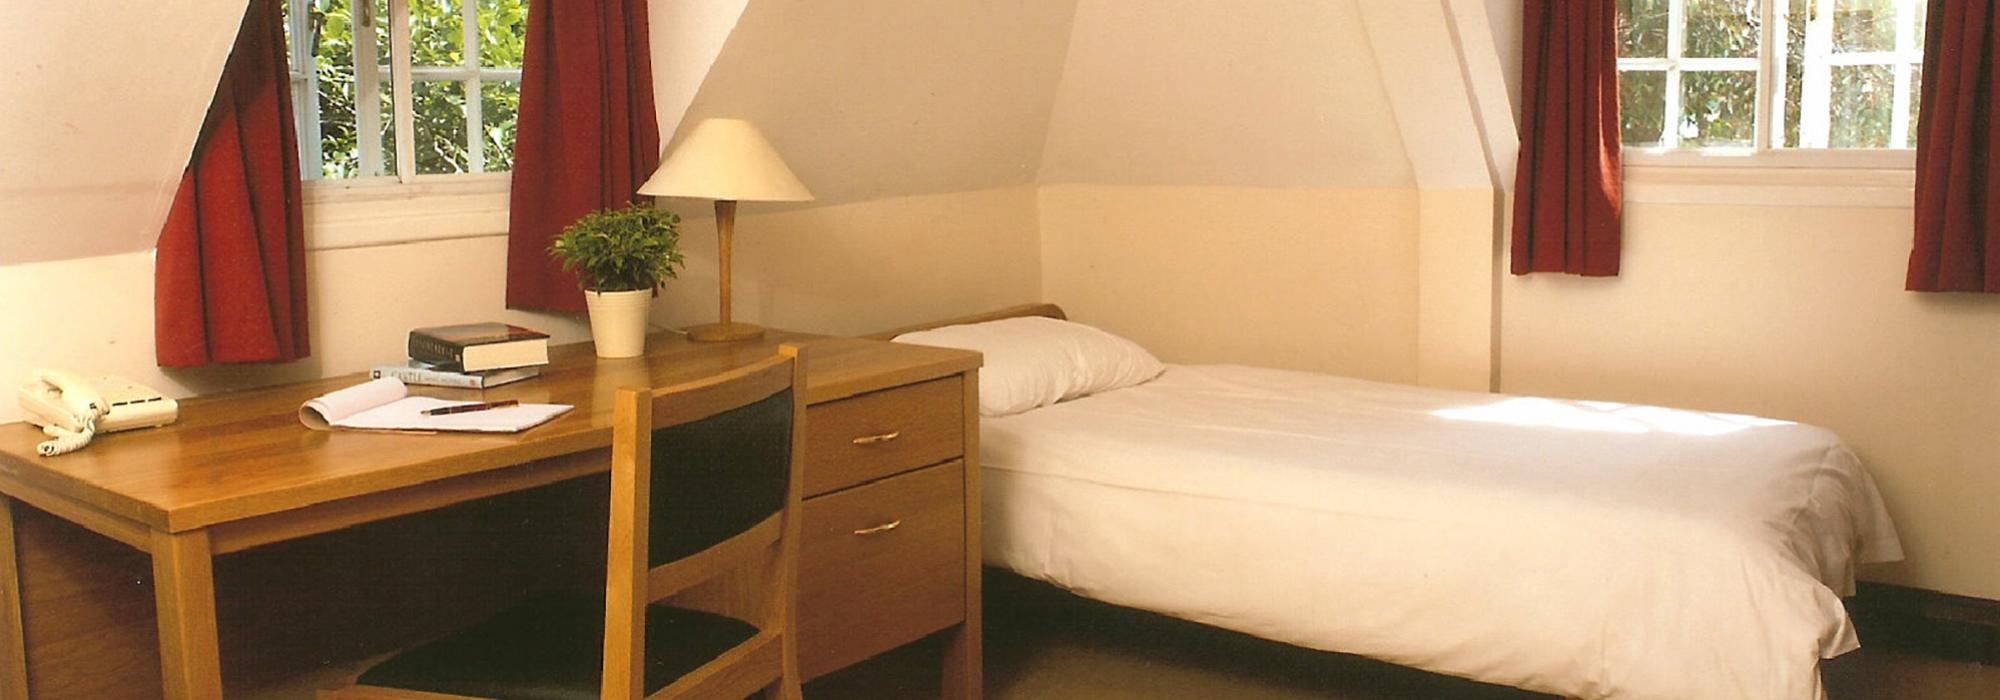 A typical bedroom at Merton College